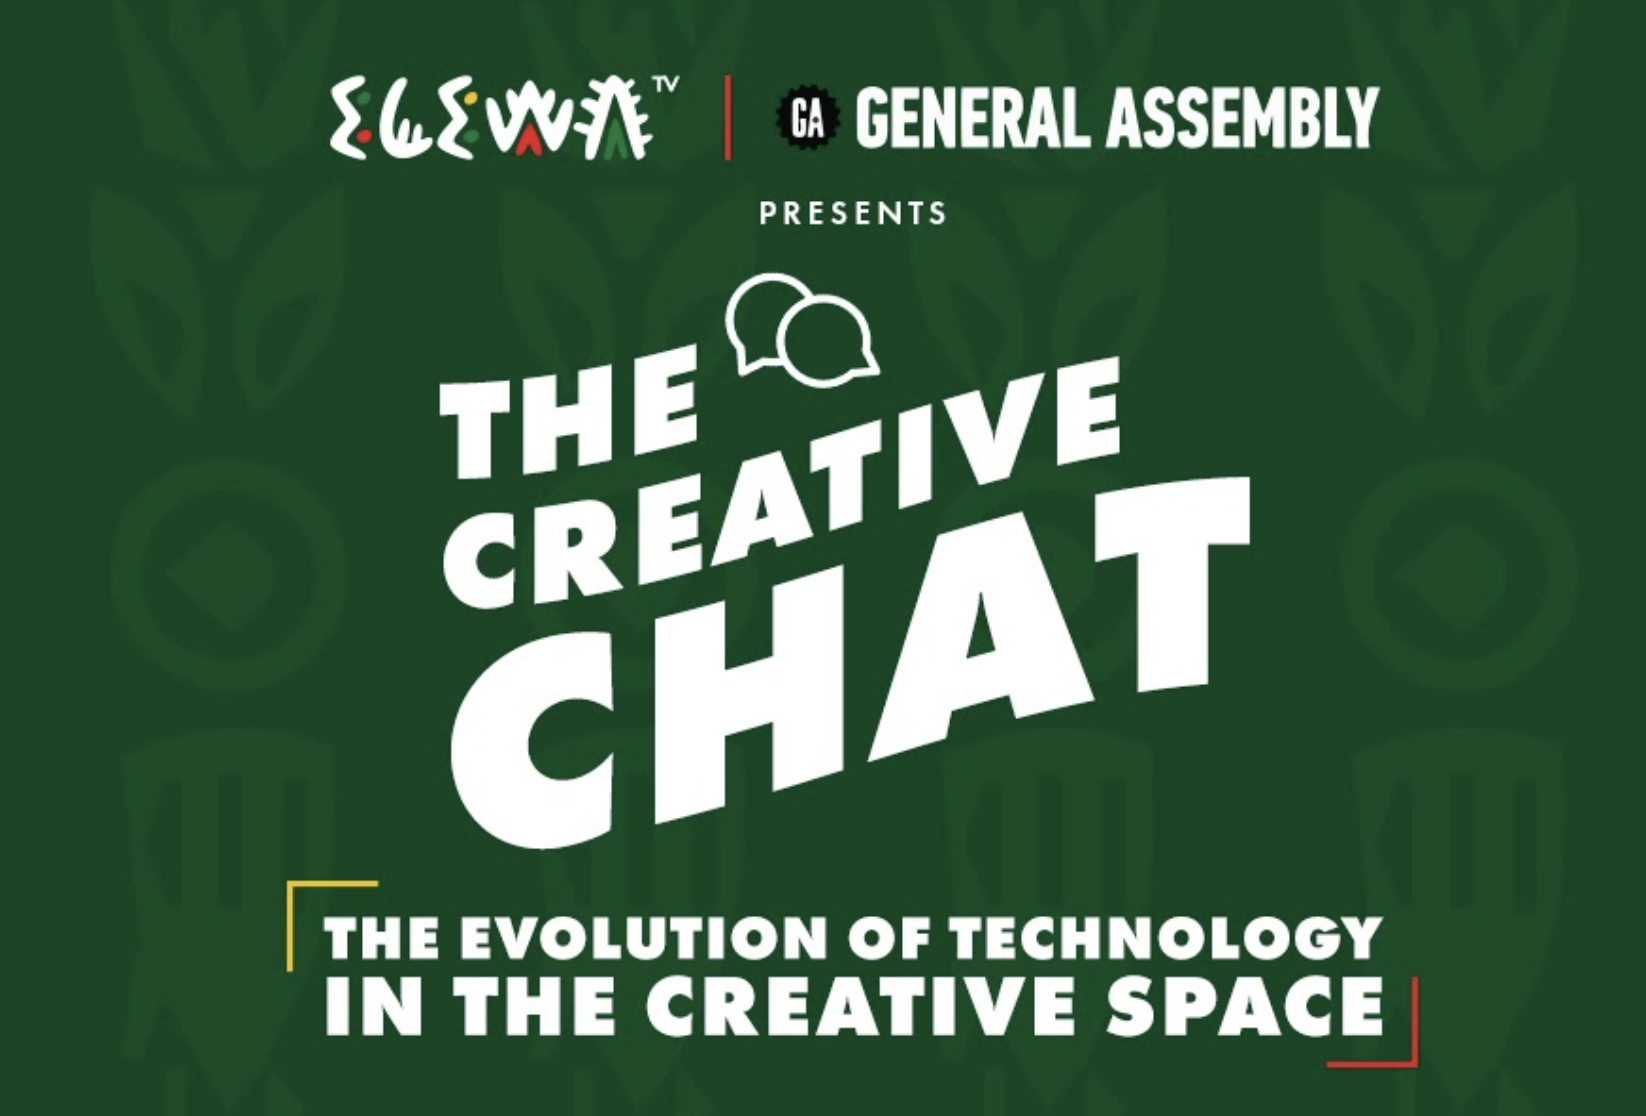 The Evolution of Technology in the Creative Space